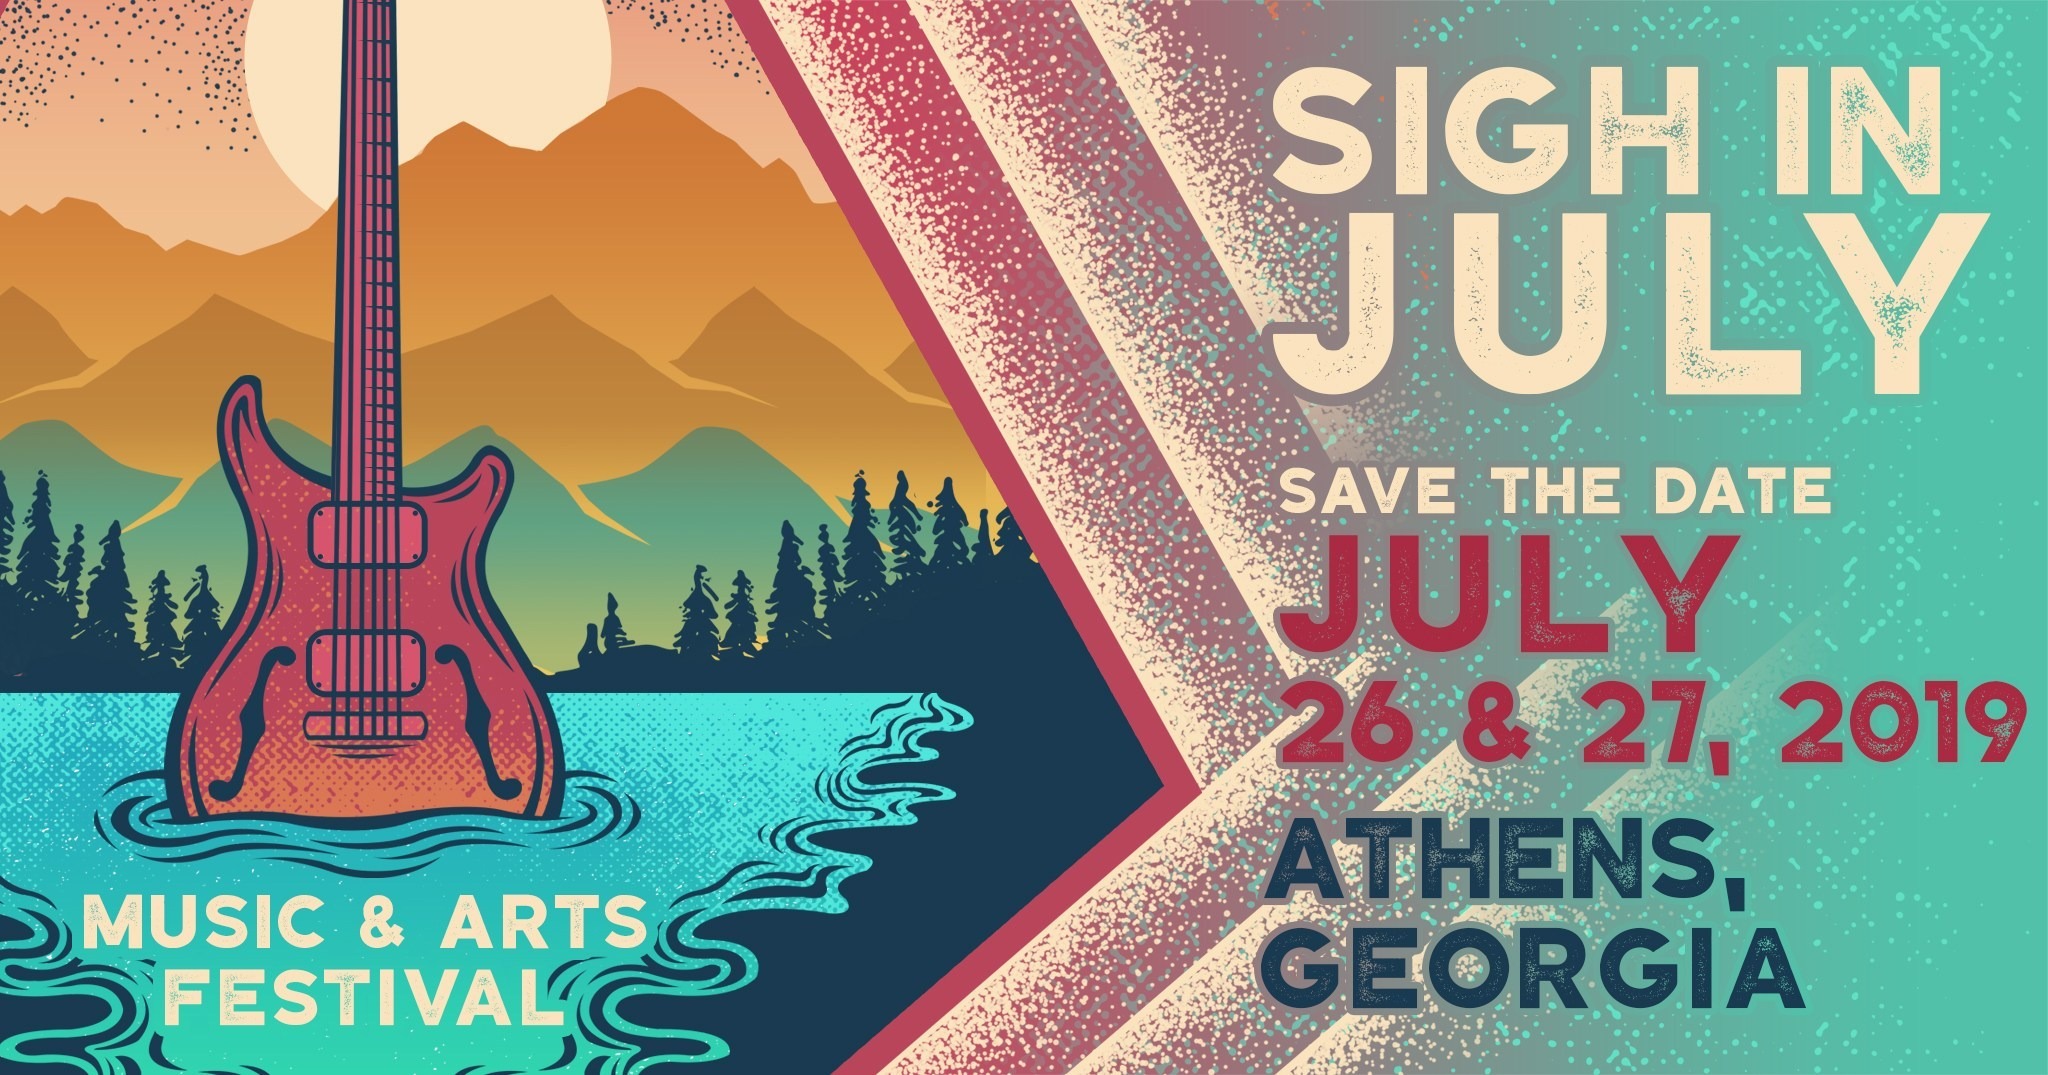 Sigh In July Festival Announces 2019 Lineup: Universal Sigh